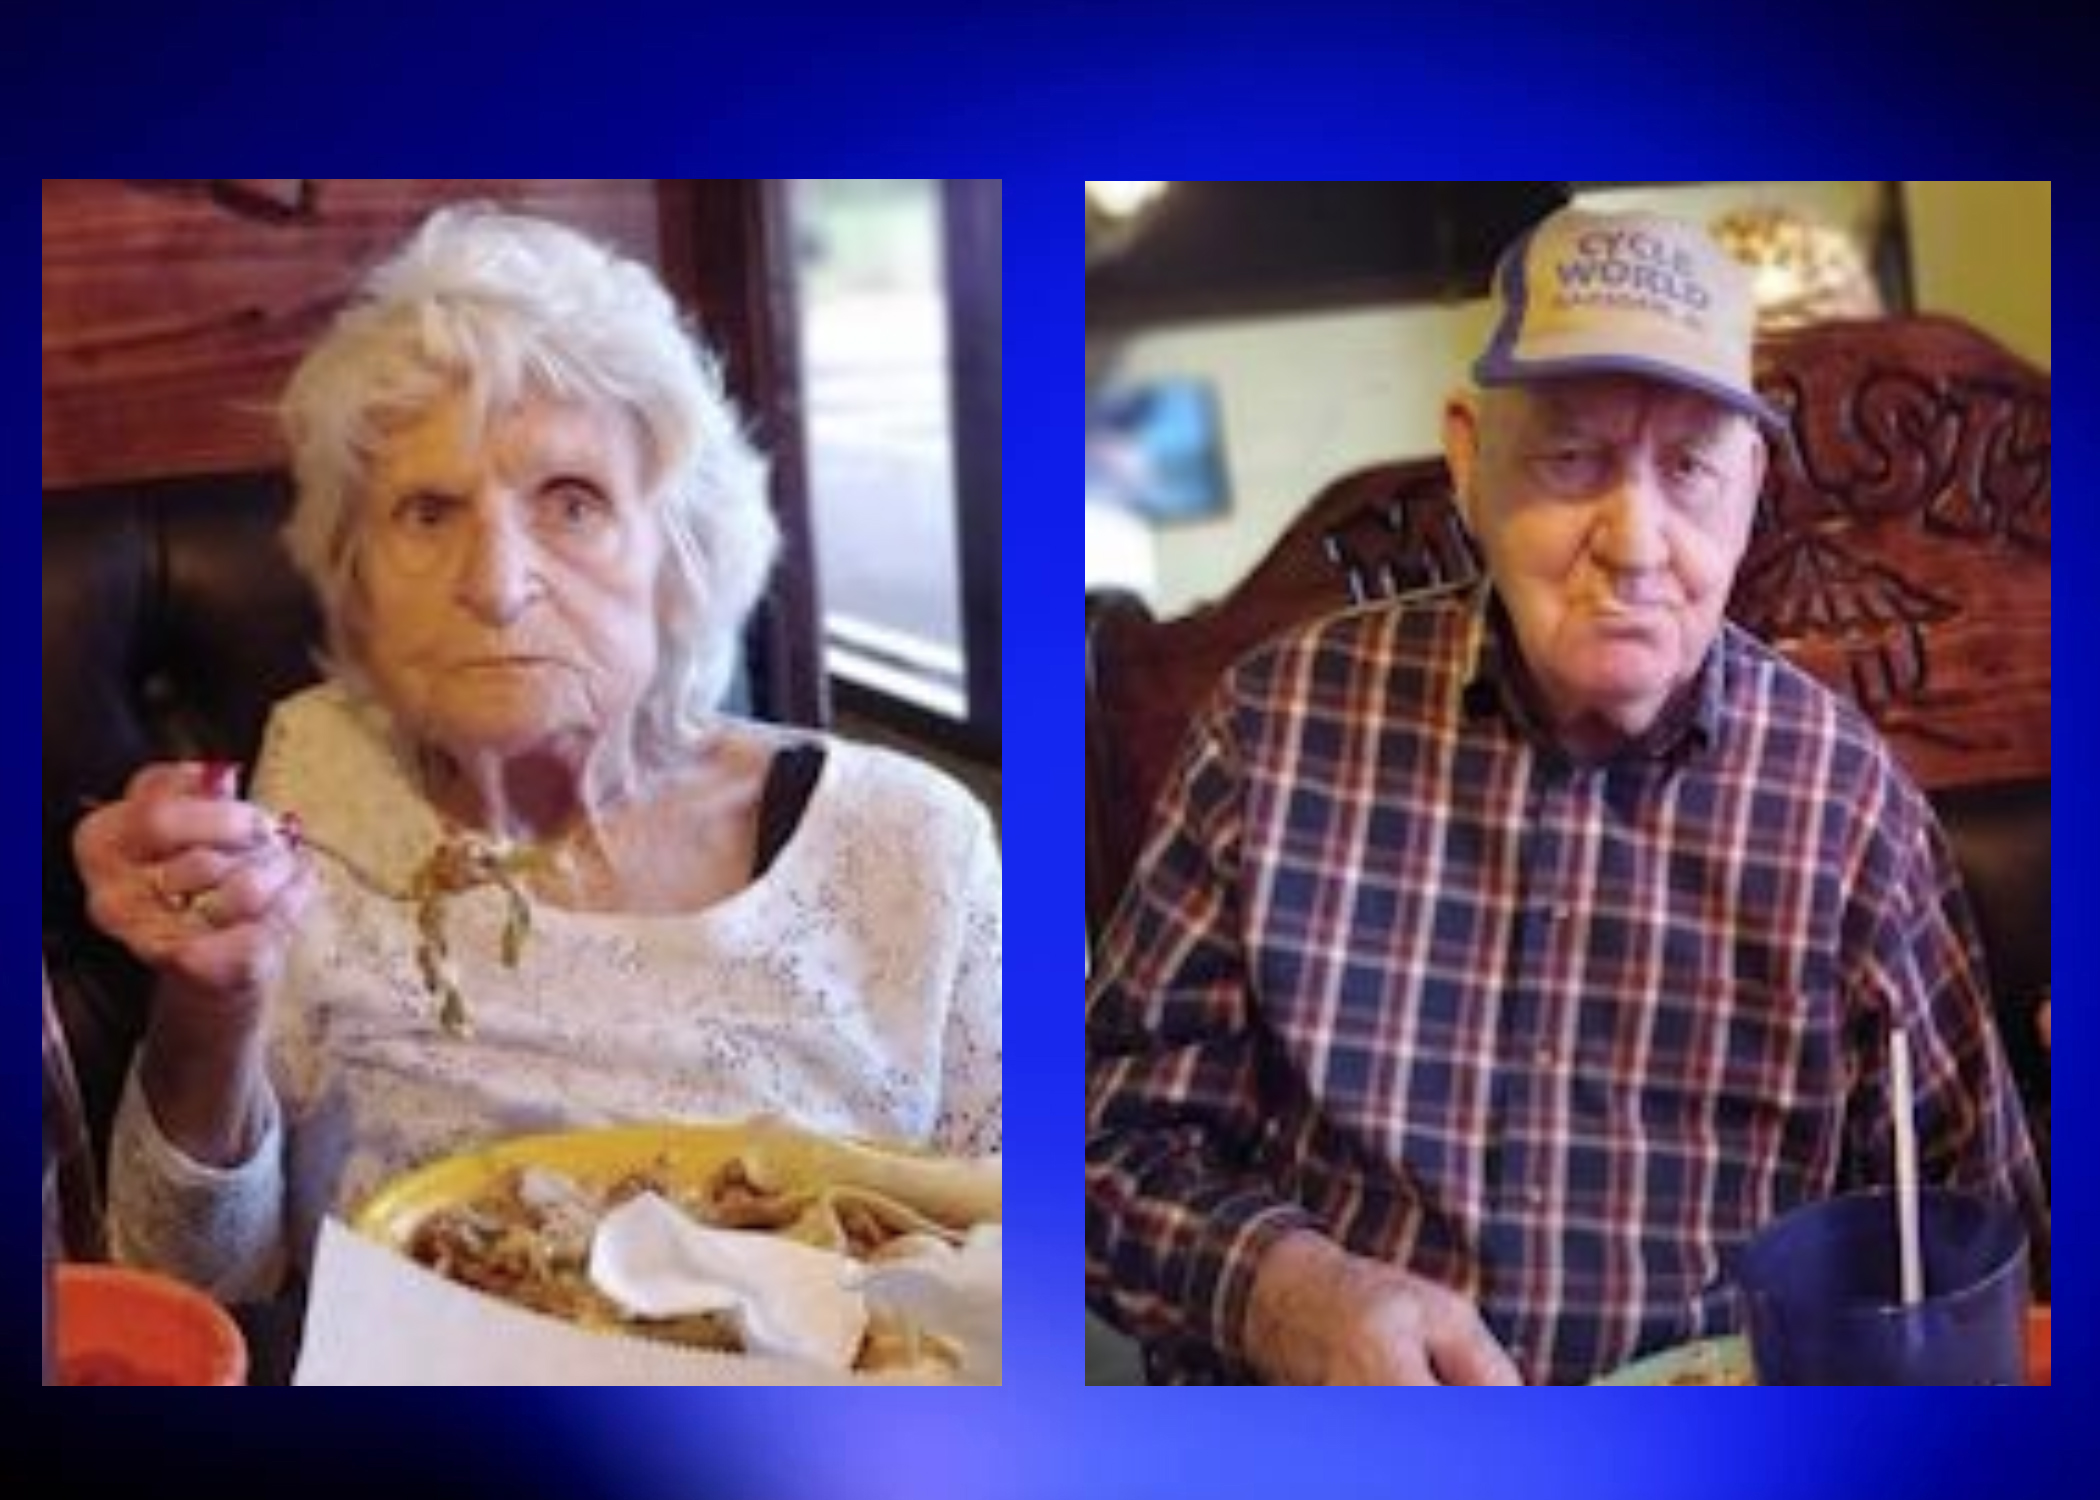 Missing and Endangered Person Alert for elderly couple in Shelby County canceled